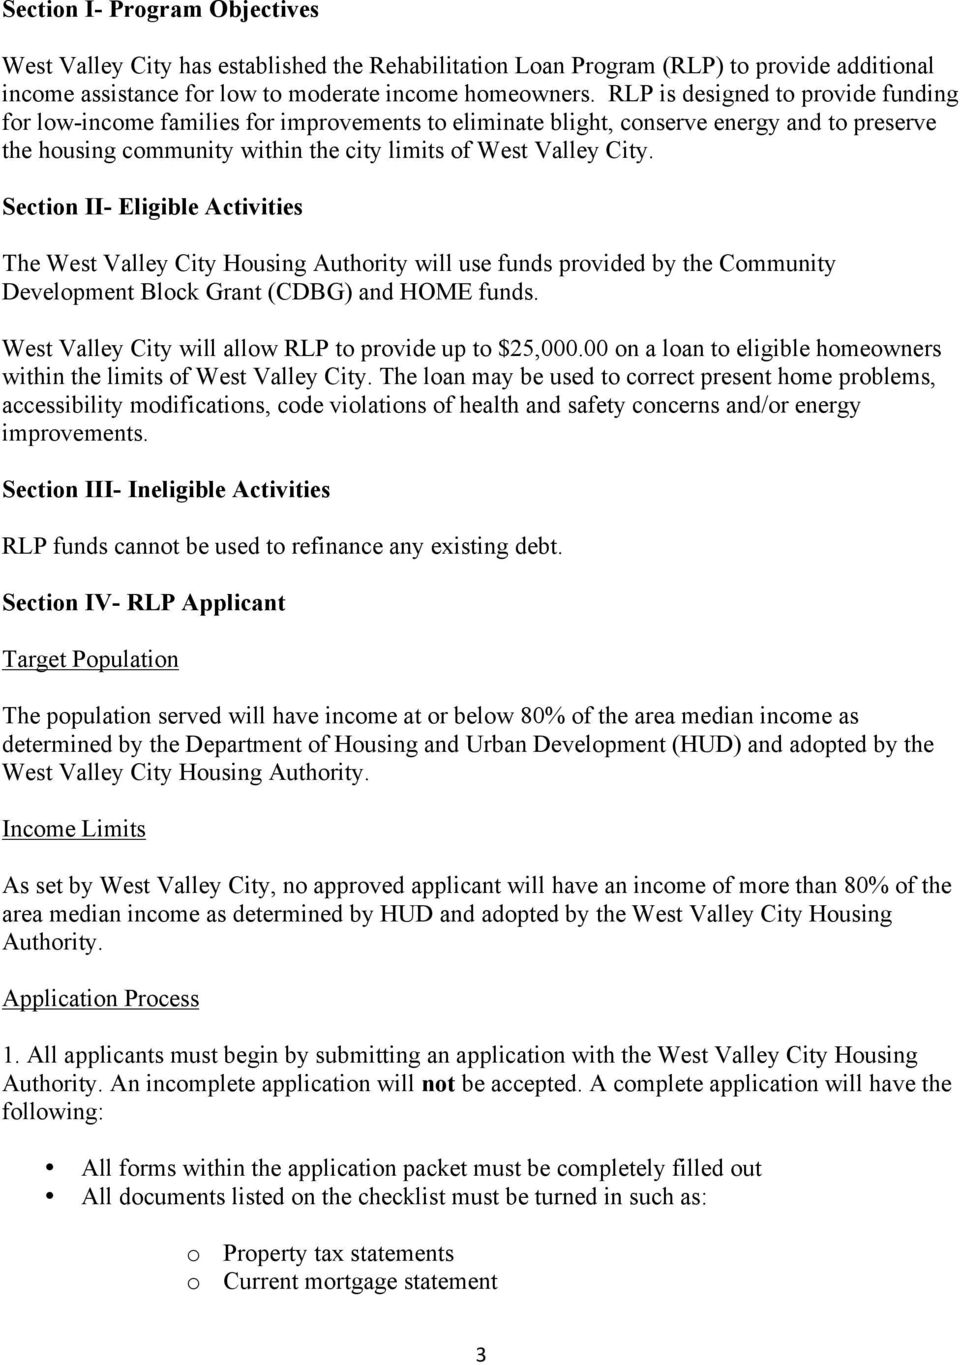 Section II- Eligible Activities The West Valley City Housing Authority will use funds provided by the Community Development Block Grant (CDBG) and HOME funds.